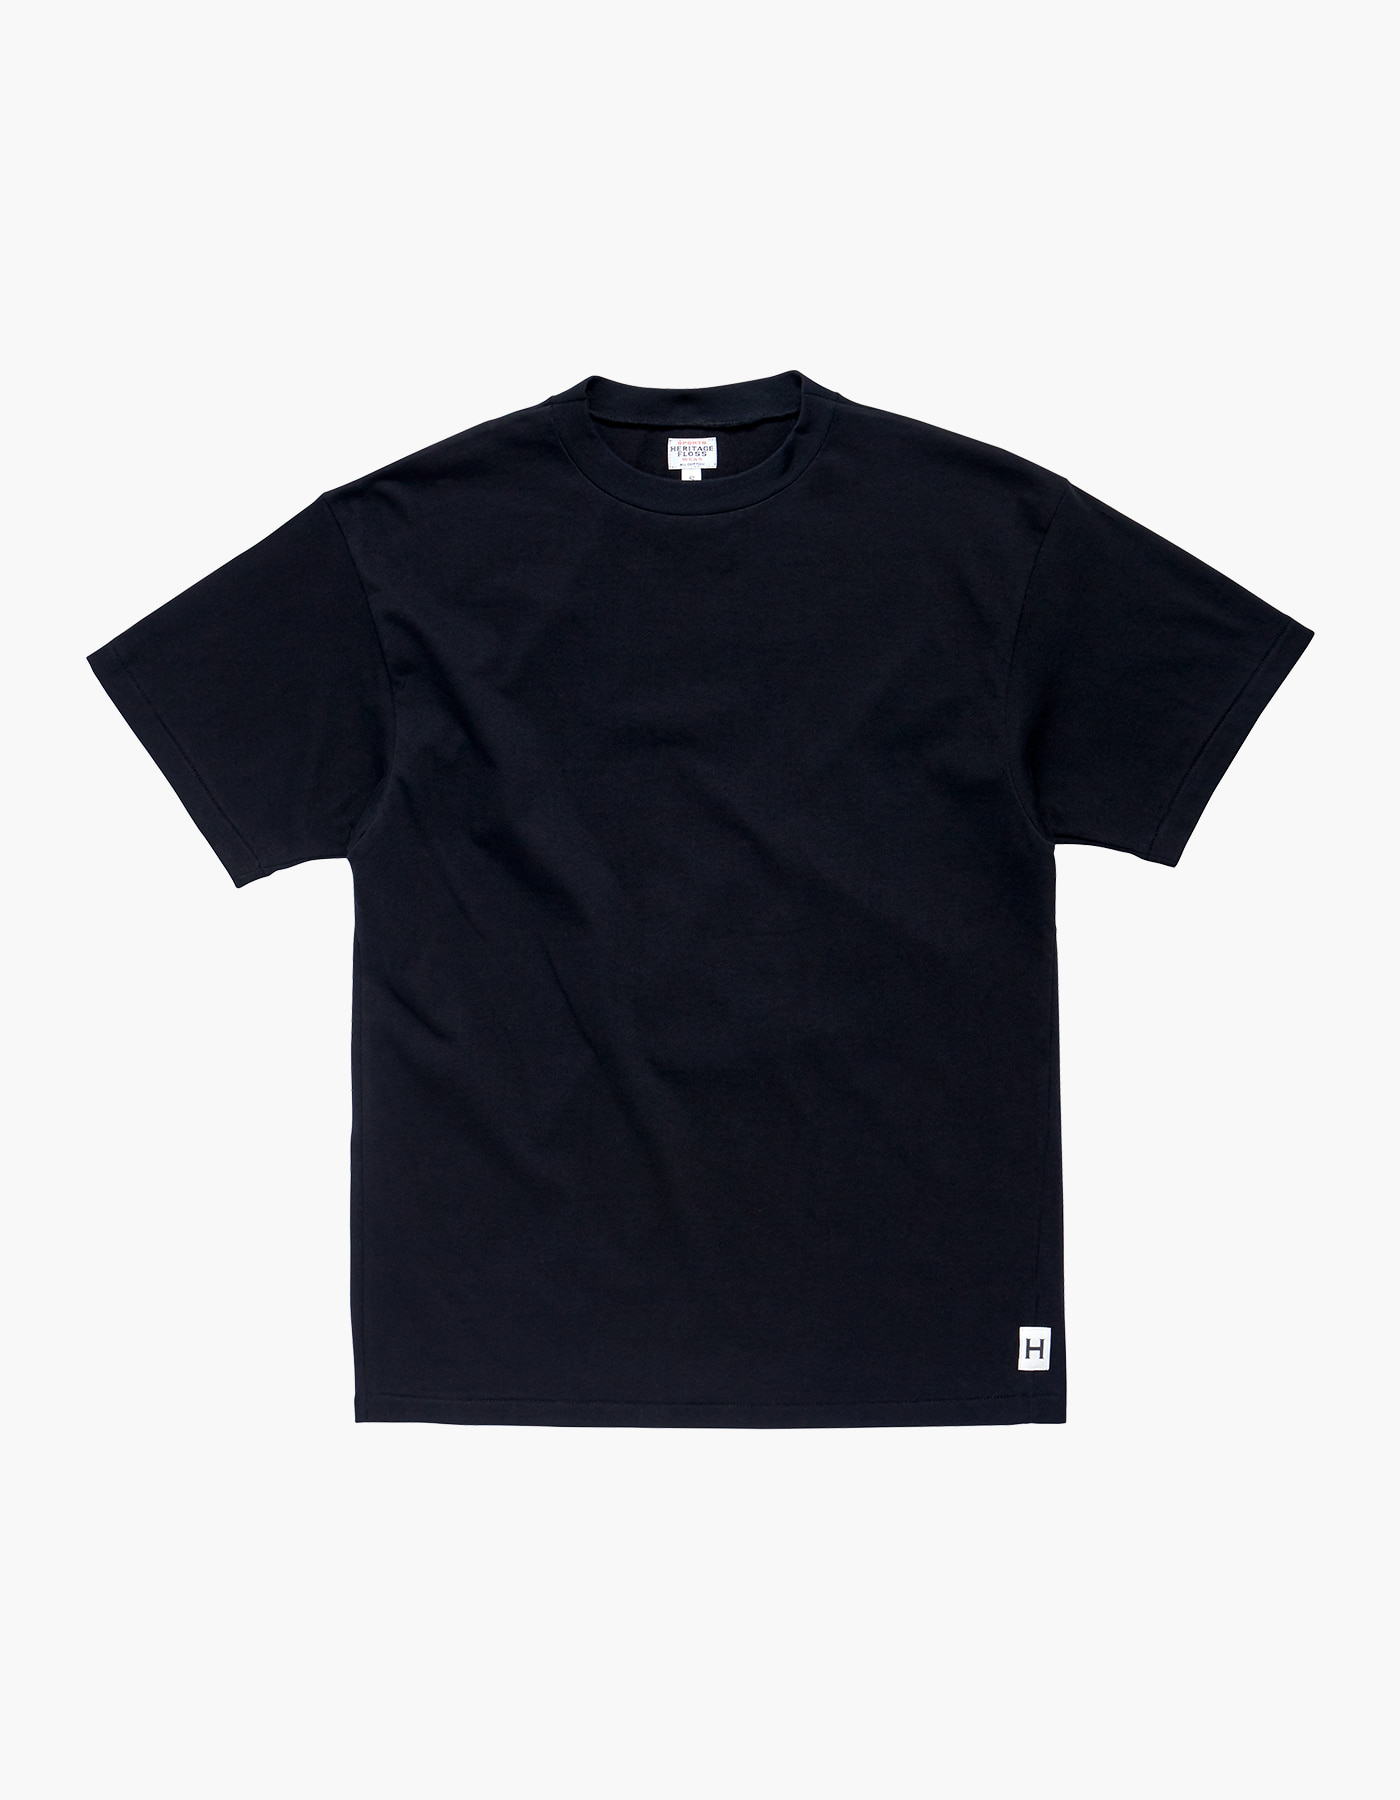 AMERICAN COTTON SINGLE T-SHIRTS / BLACK